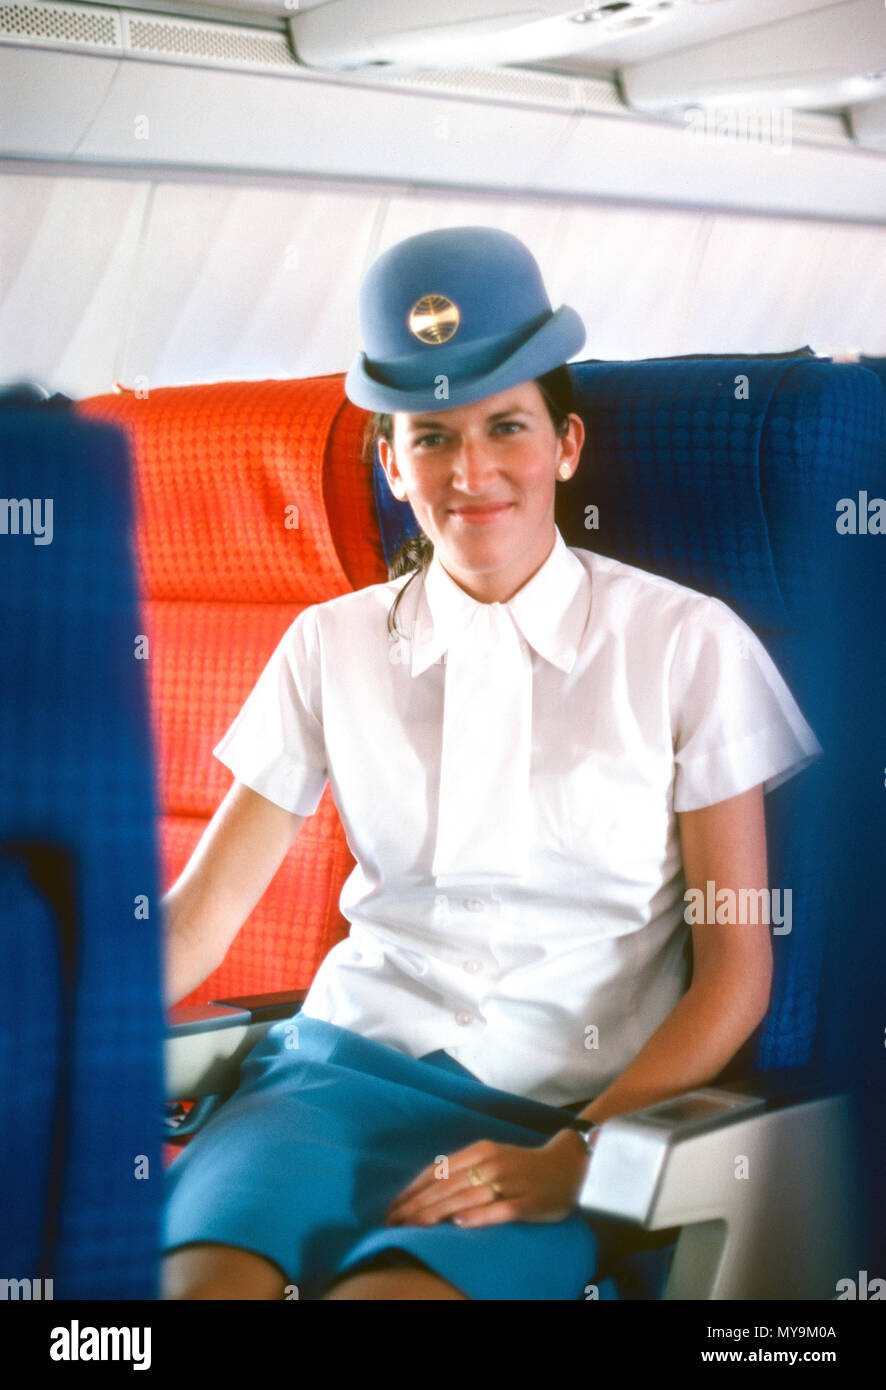 PanAm Flight Attendant Seated in a 707 Passenger Jet. - Stock Image